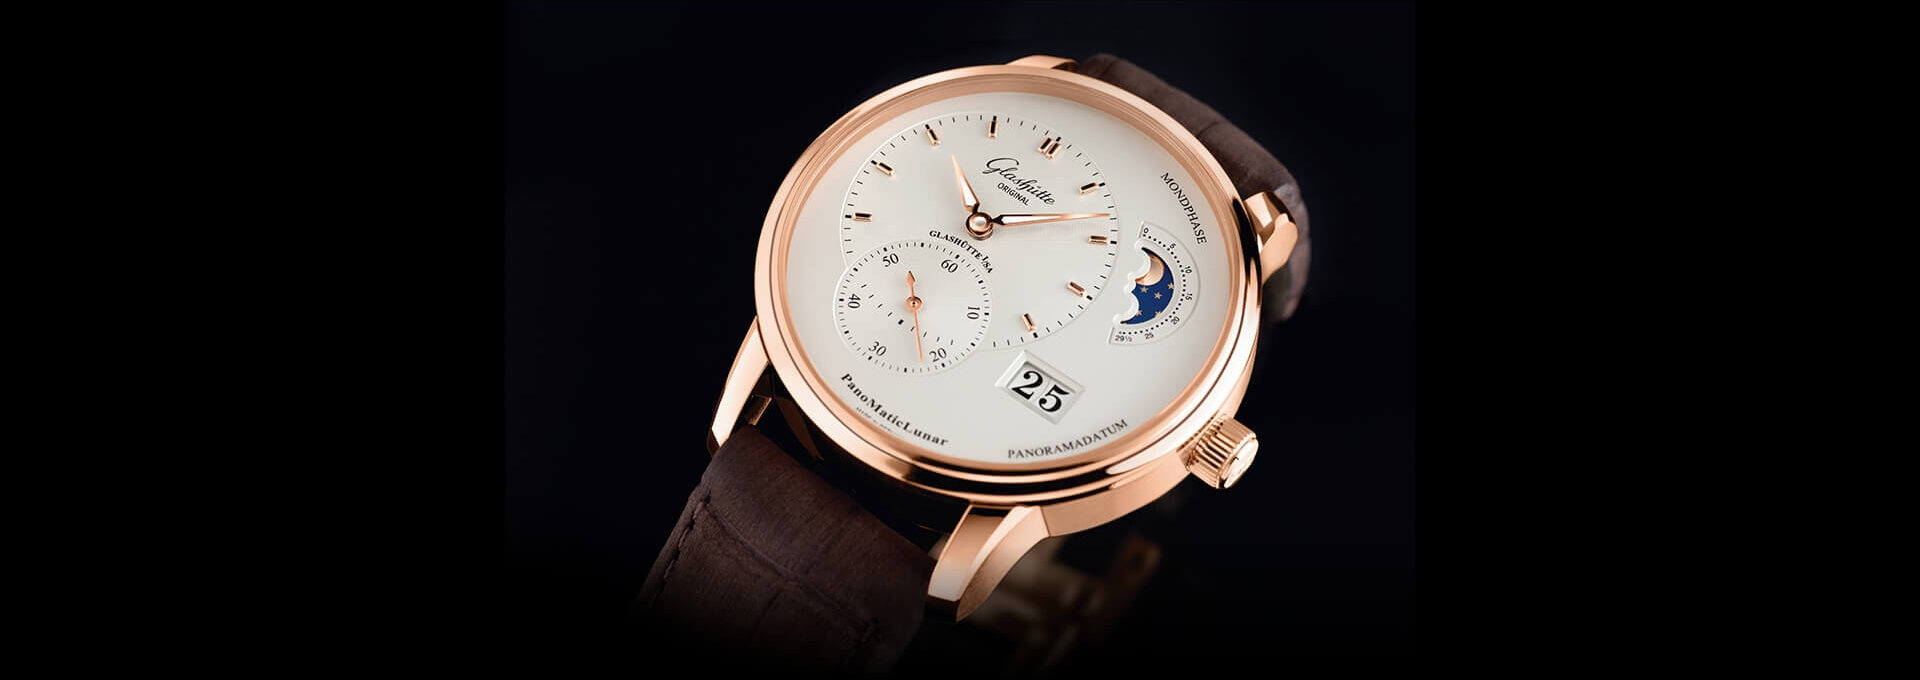 Glashuette_Original-W19002453505-Detail-5